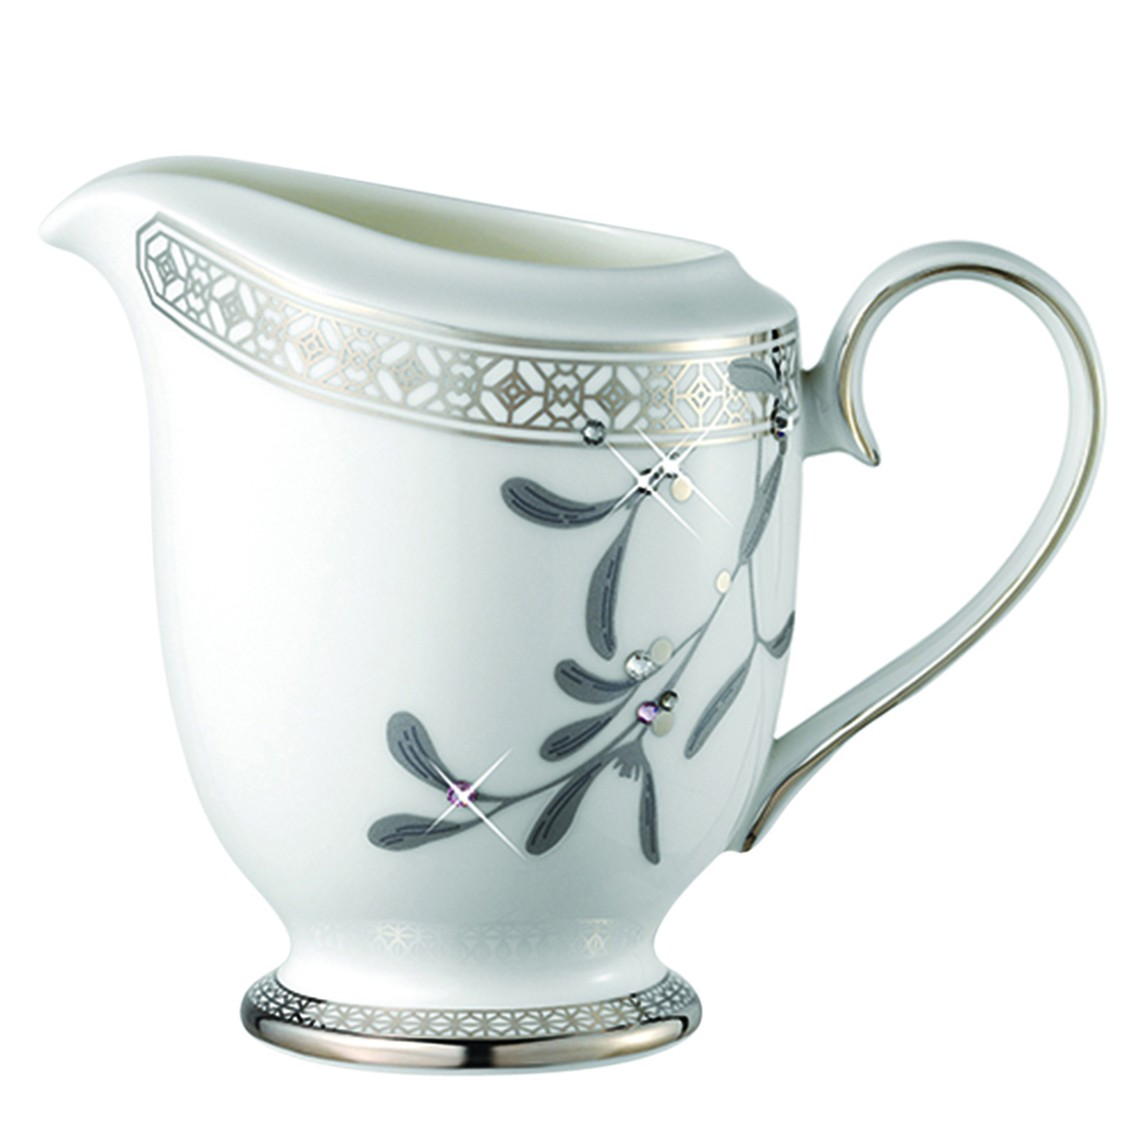 Prouna Platinum Leaves Creamer